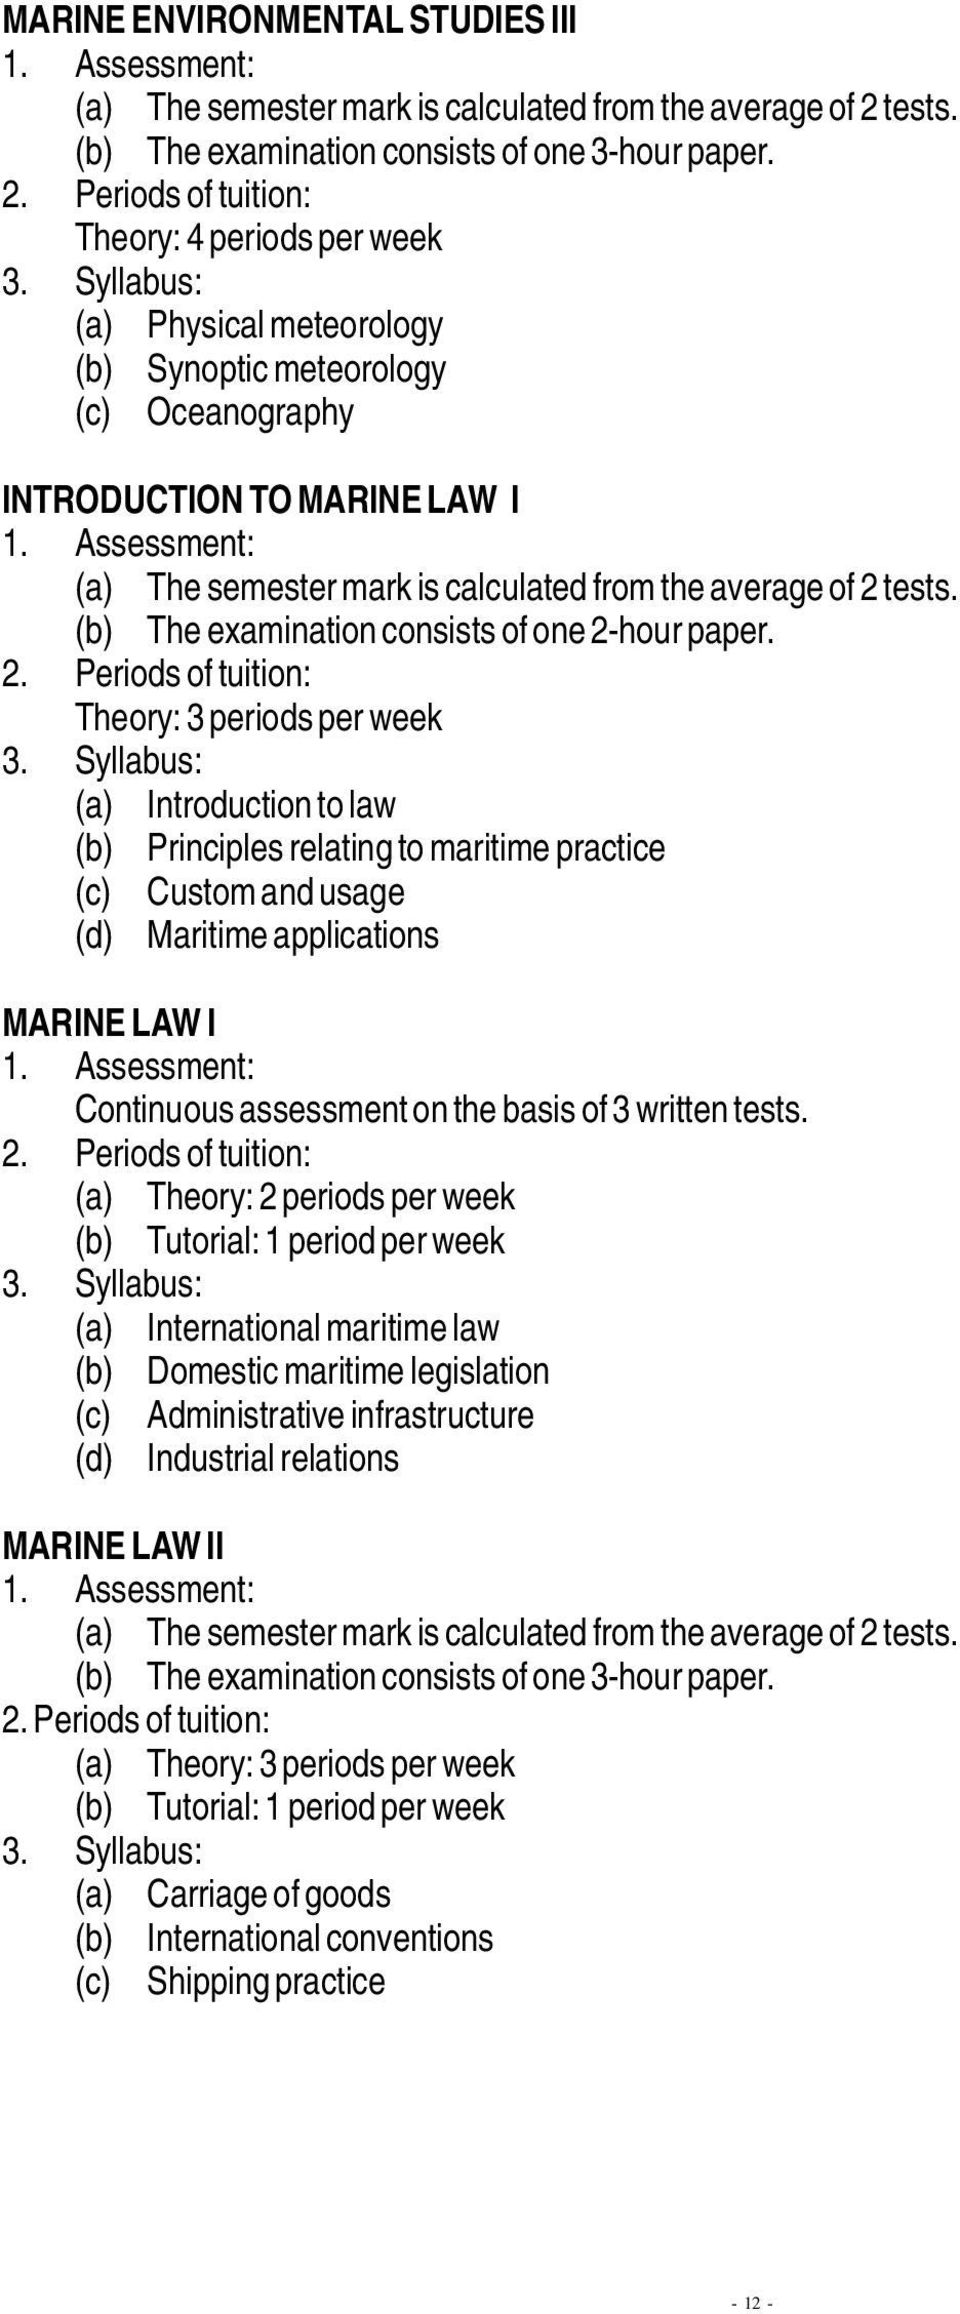 Theory: 3 periods per week (a) Introduction to law (b) Principles relating to maritime practice (c) Custom and usage (d) Maritime applications MARINE LAW I Continuous assessment on the basis